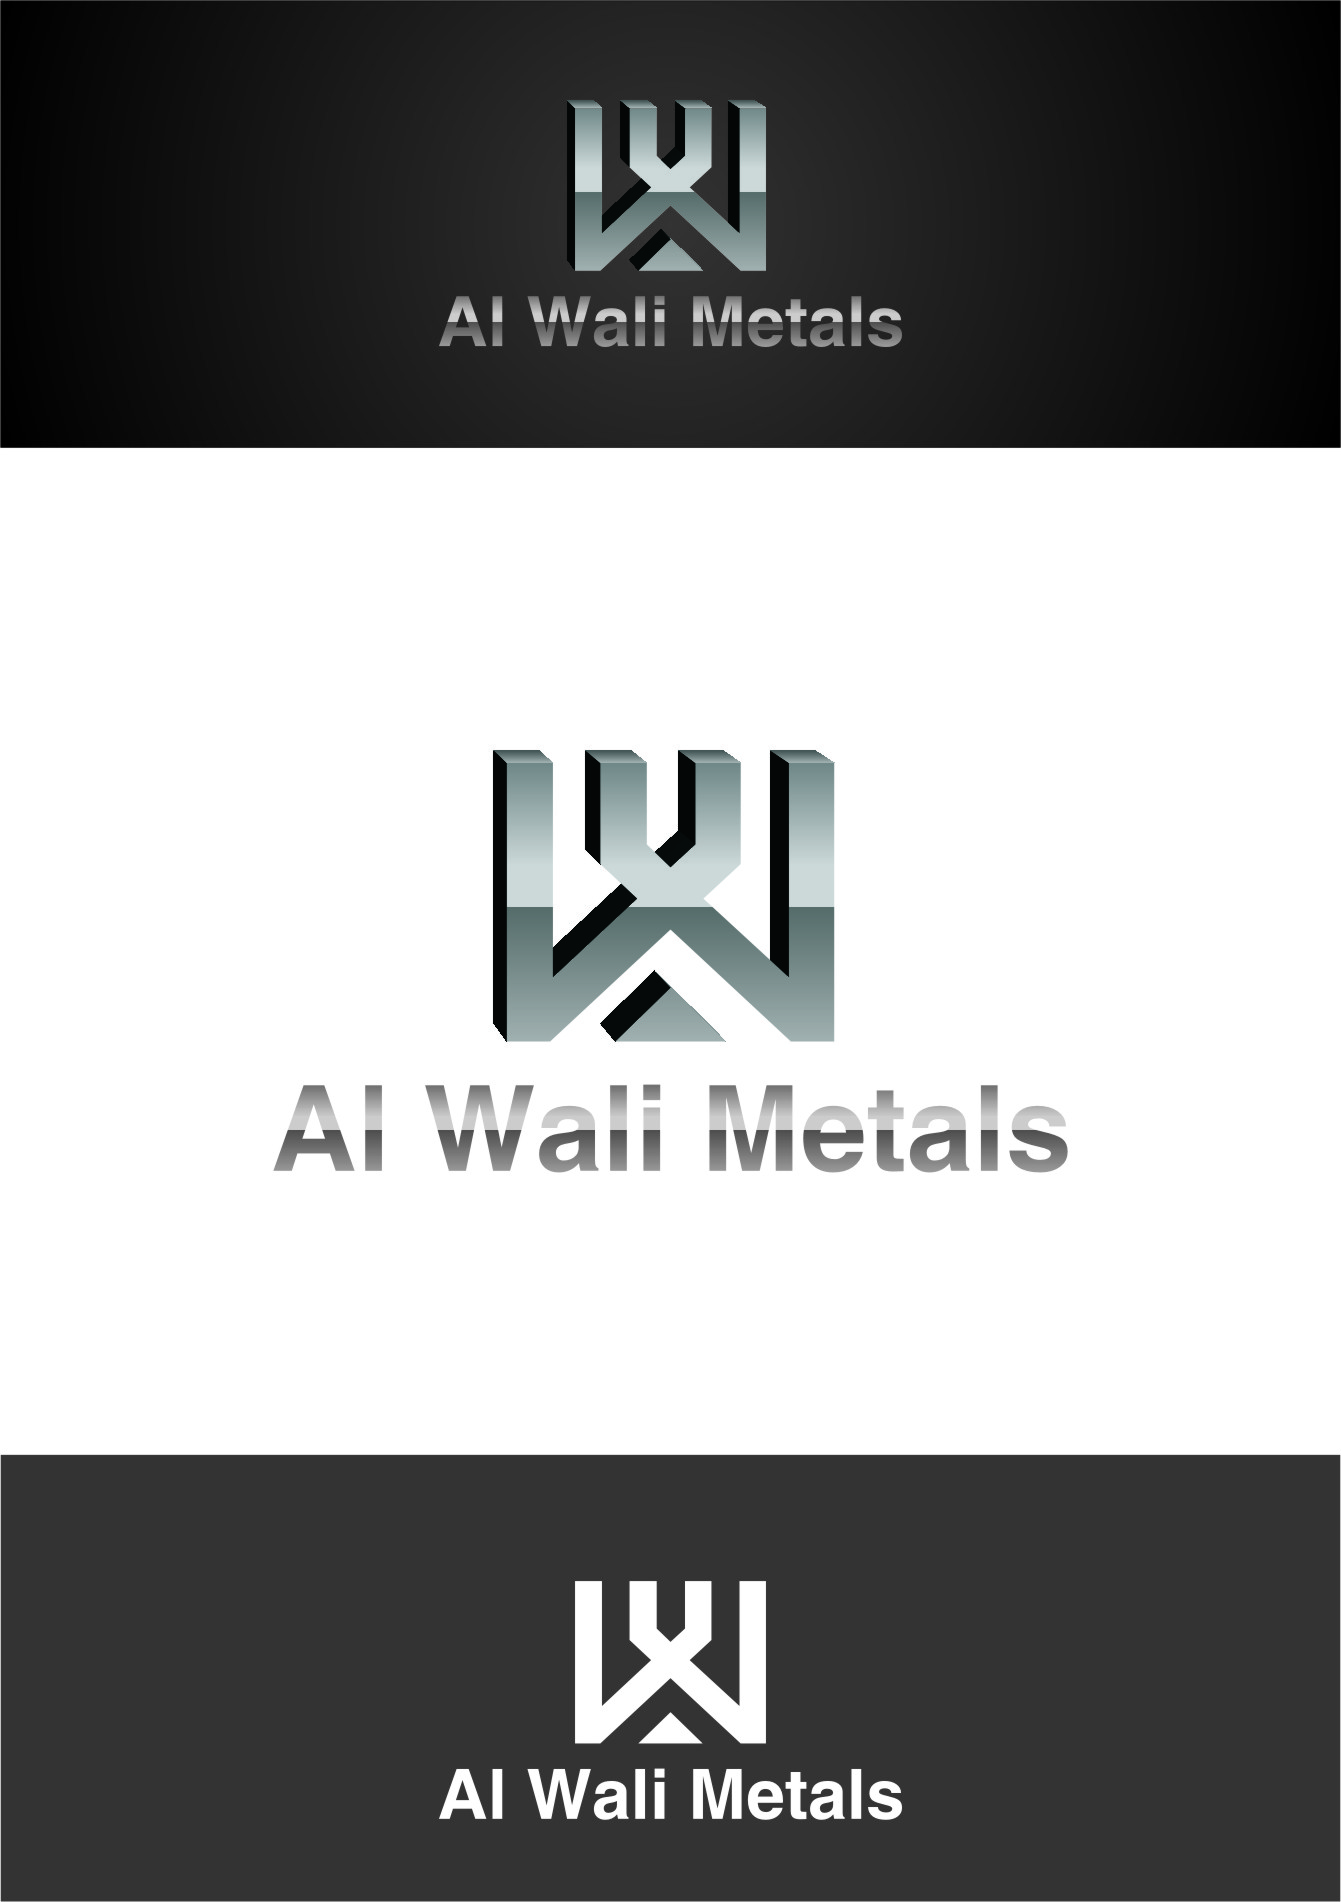 Logo Design by Ngepet_art - Entry No. 75 in the Logo Design Contest Inspiring Logo Design for Al Wali Metals.